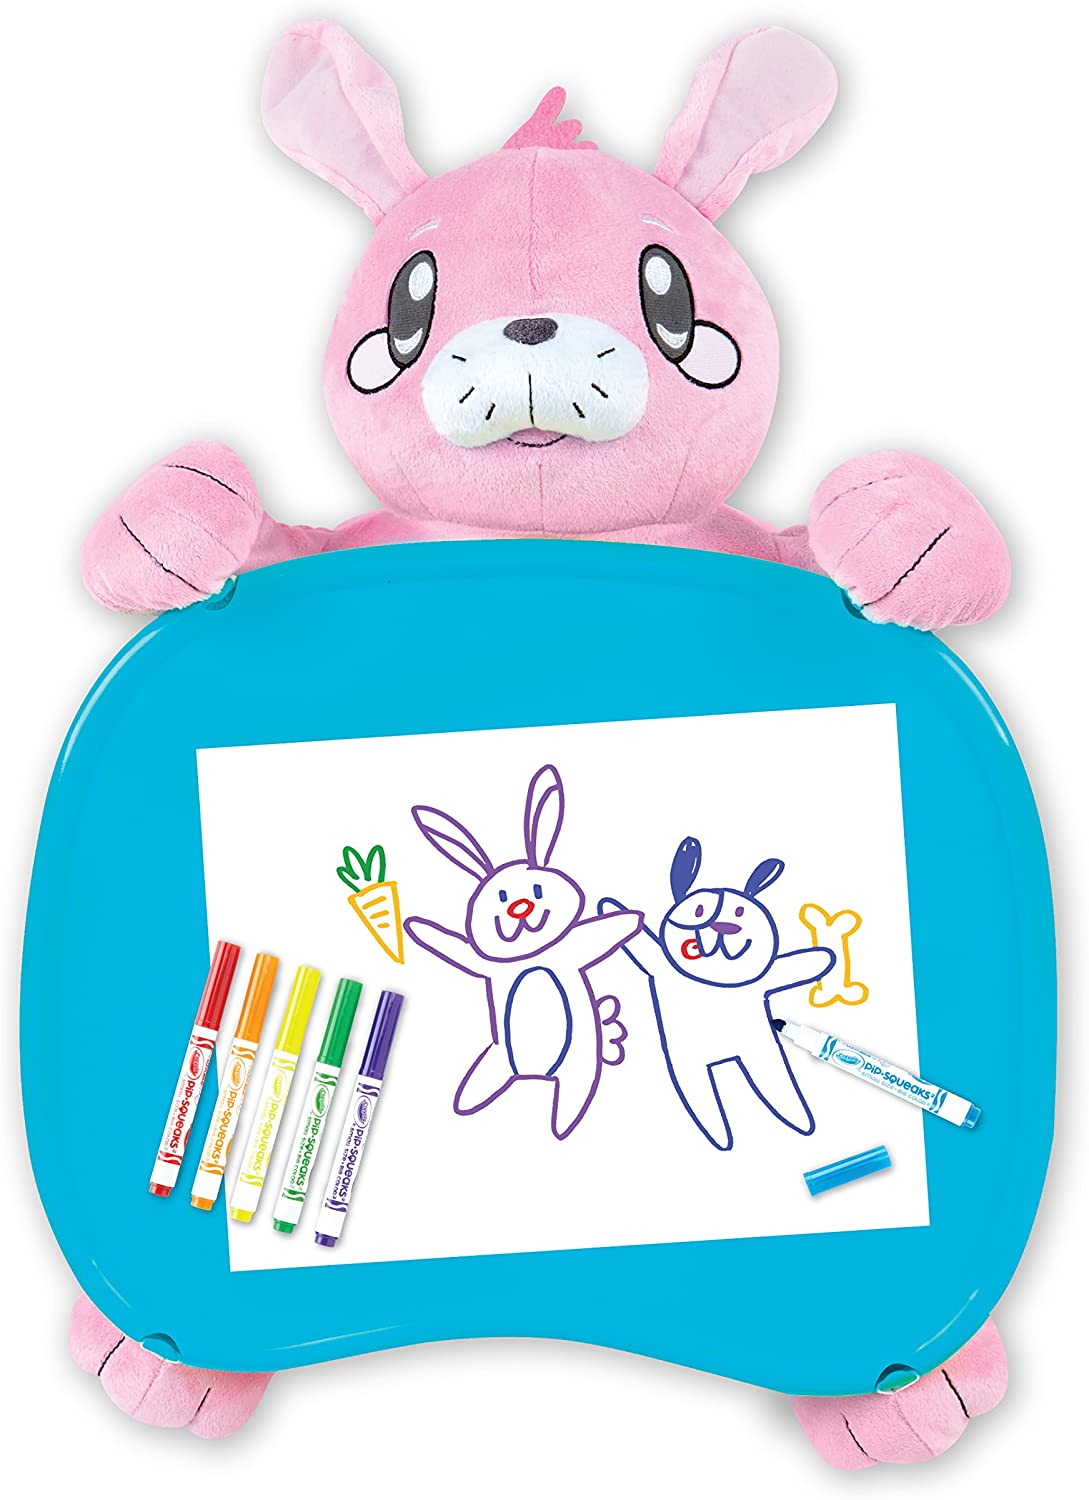 6 Gift for Kids 7 5 Age 4 Crayola Travel Lap Desk with Storage Bunny Stuffed Animal